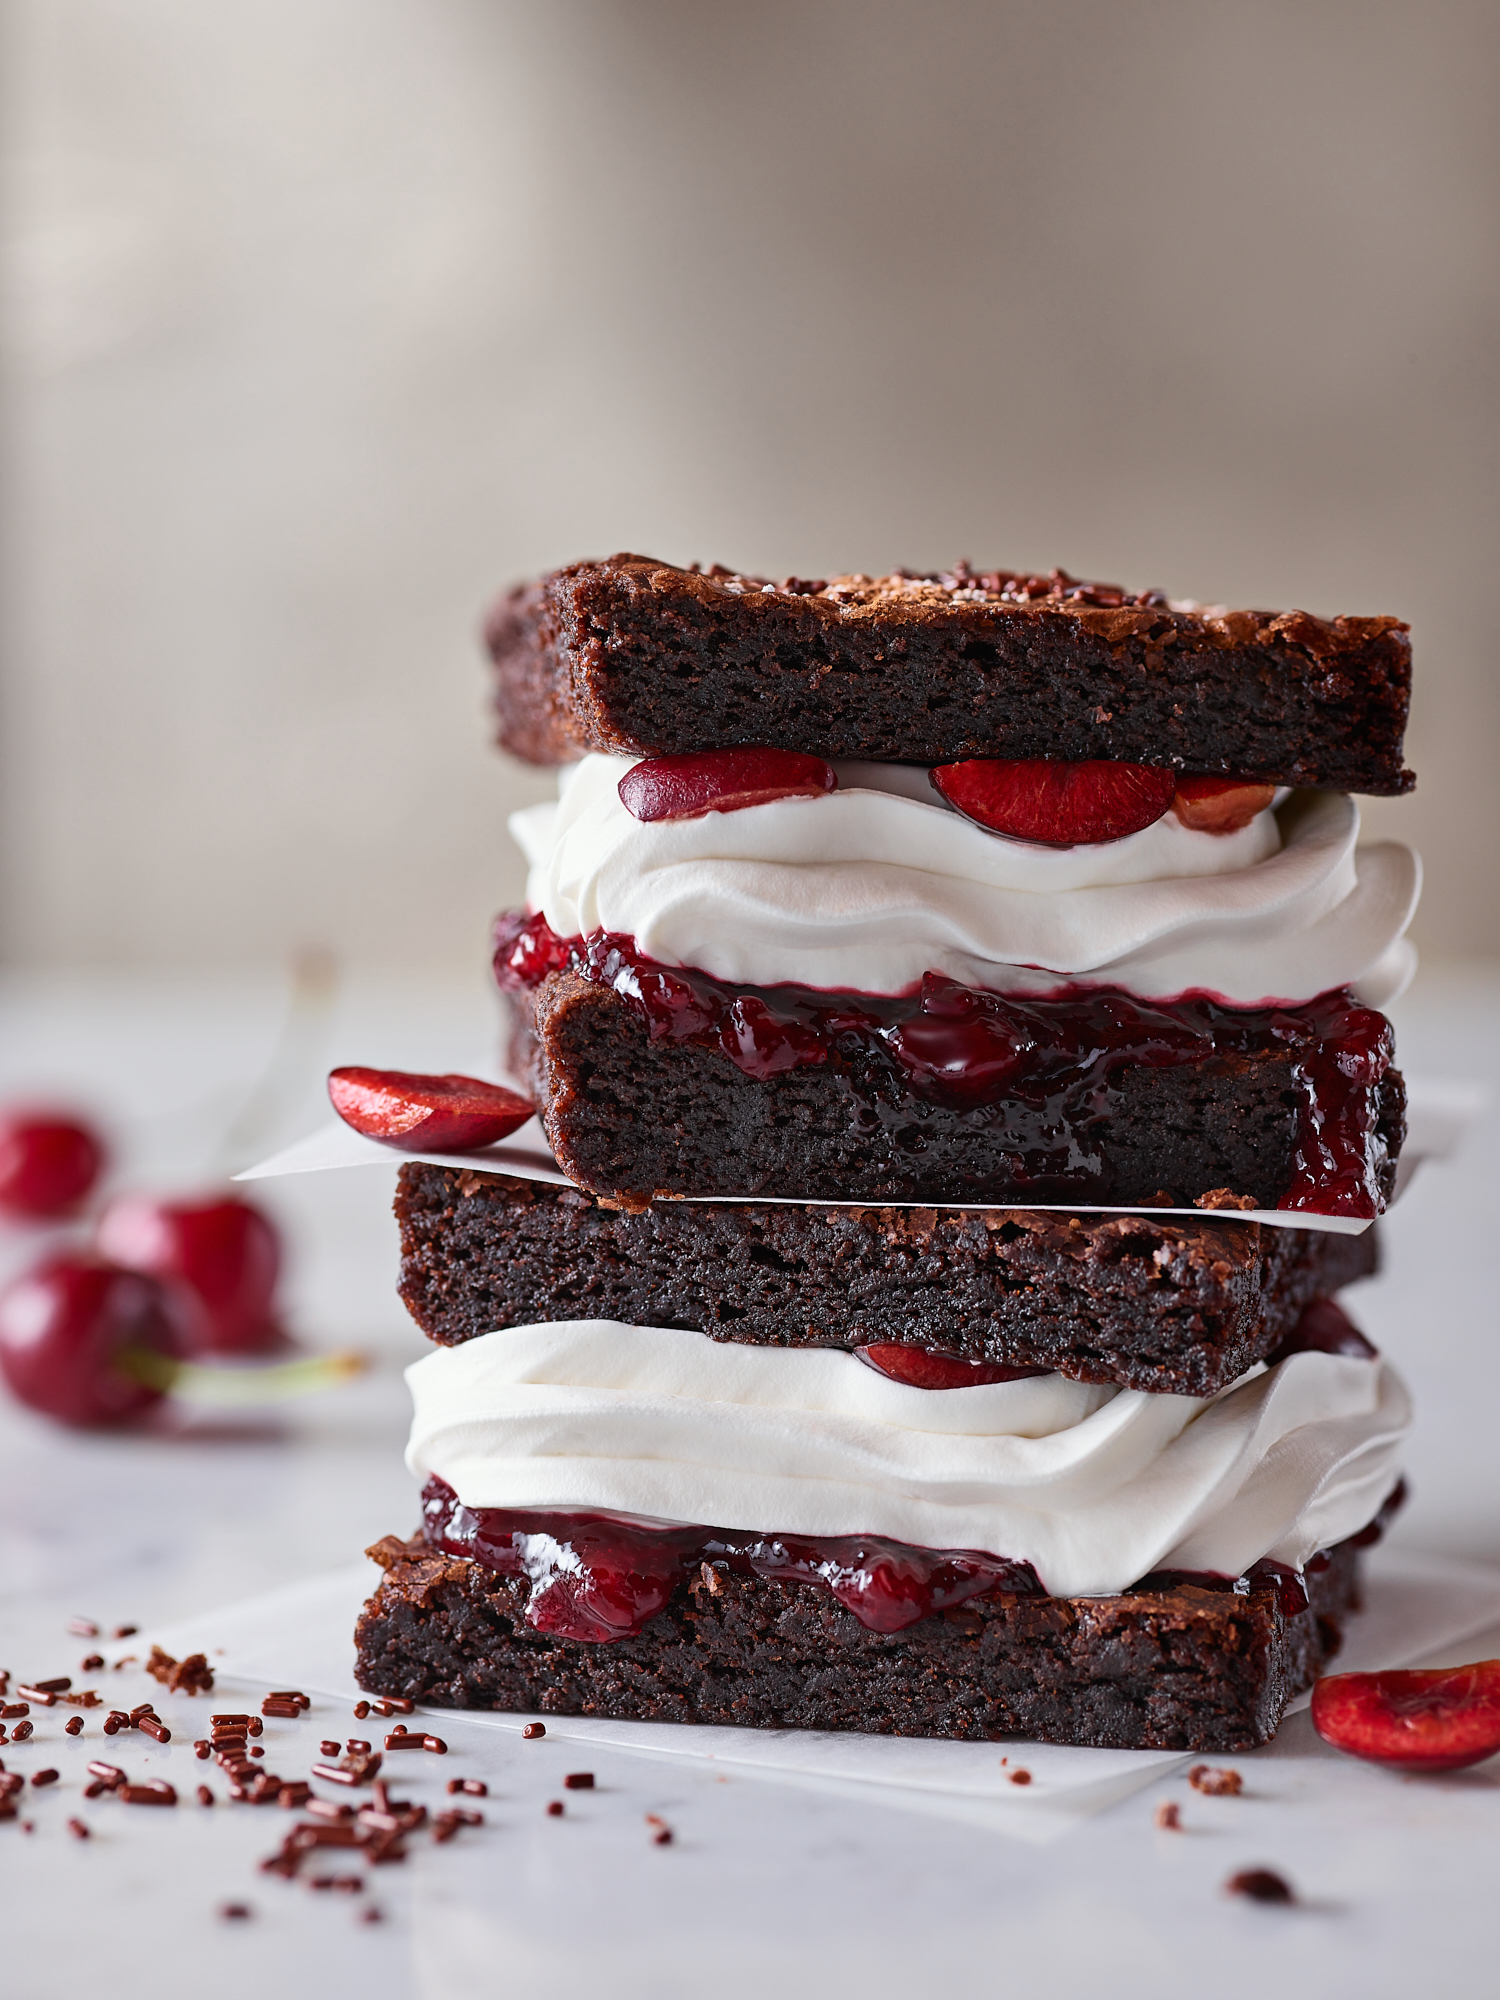 3-Brownie-Ice-Cream-Sandwich_0289_062819_R1_V2.jpg